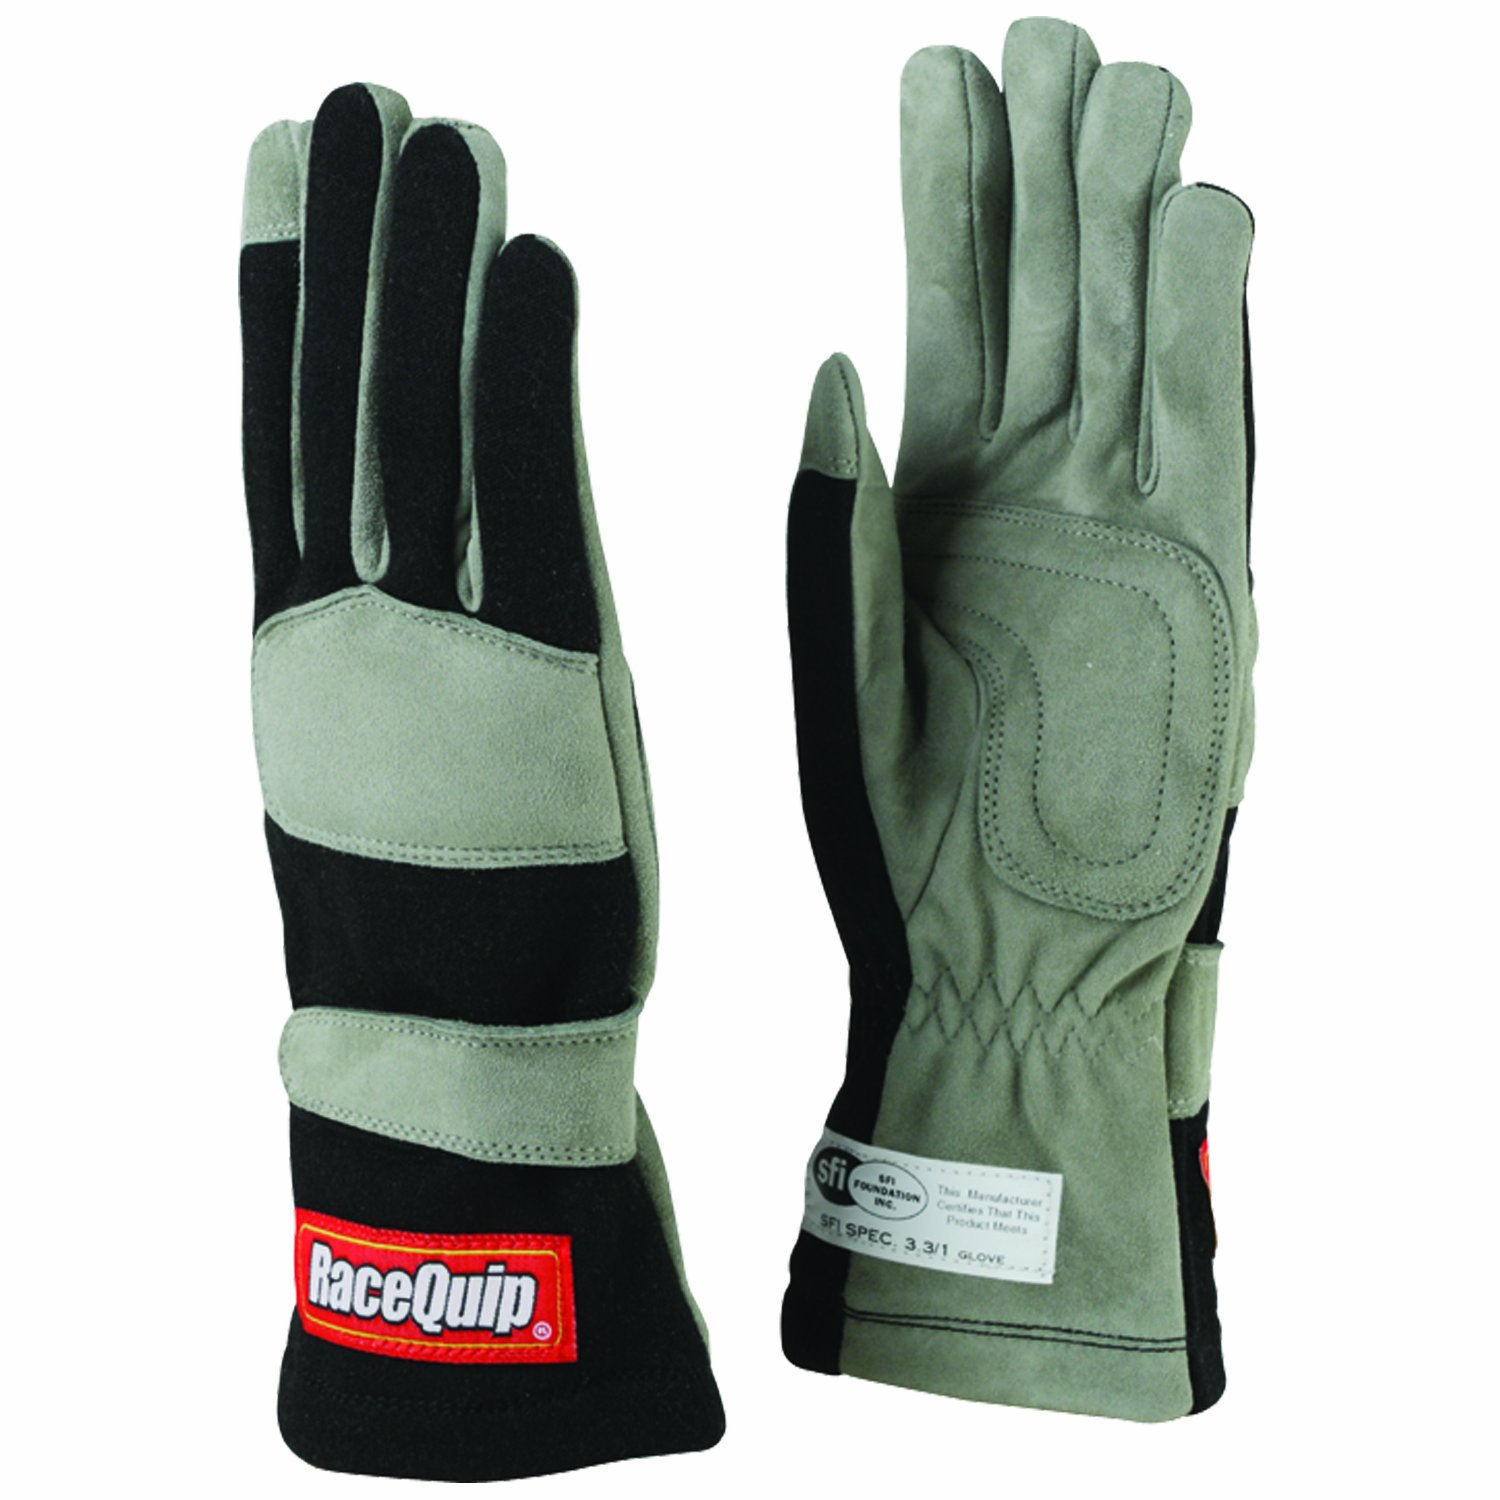 RaceQuip 351002 351 Series Small Black SFI 3.3//1 One Layer Racing Gloves